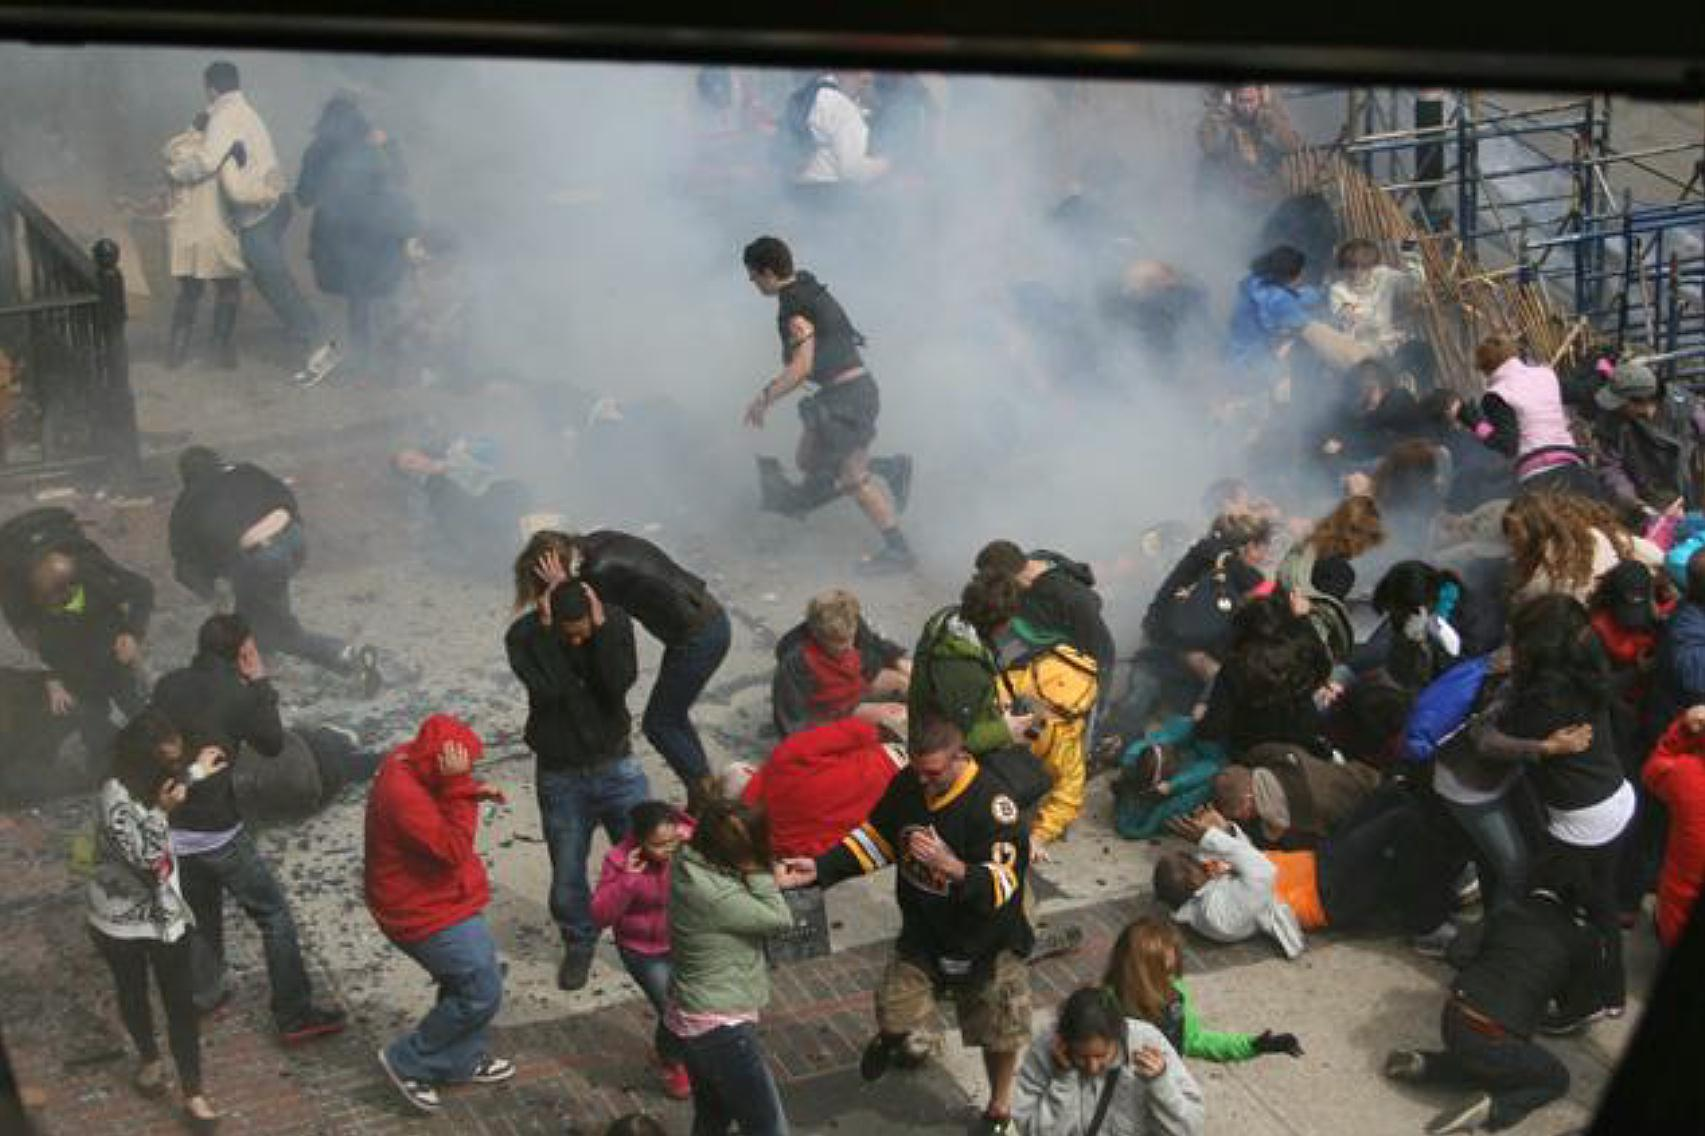 boston bombings Browse boston marathon bombing news, research and analysis from the conversation.